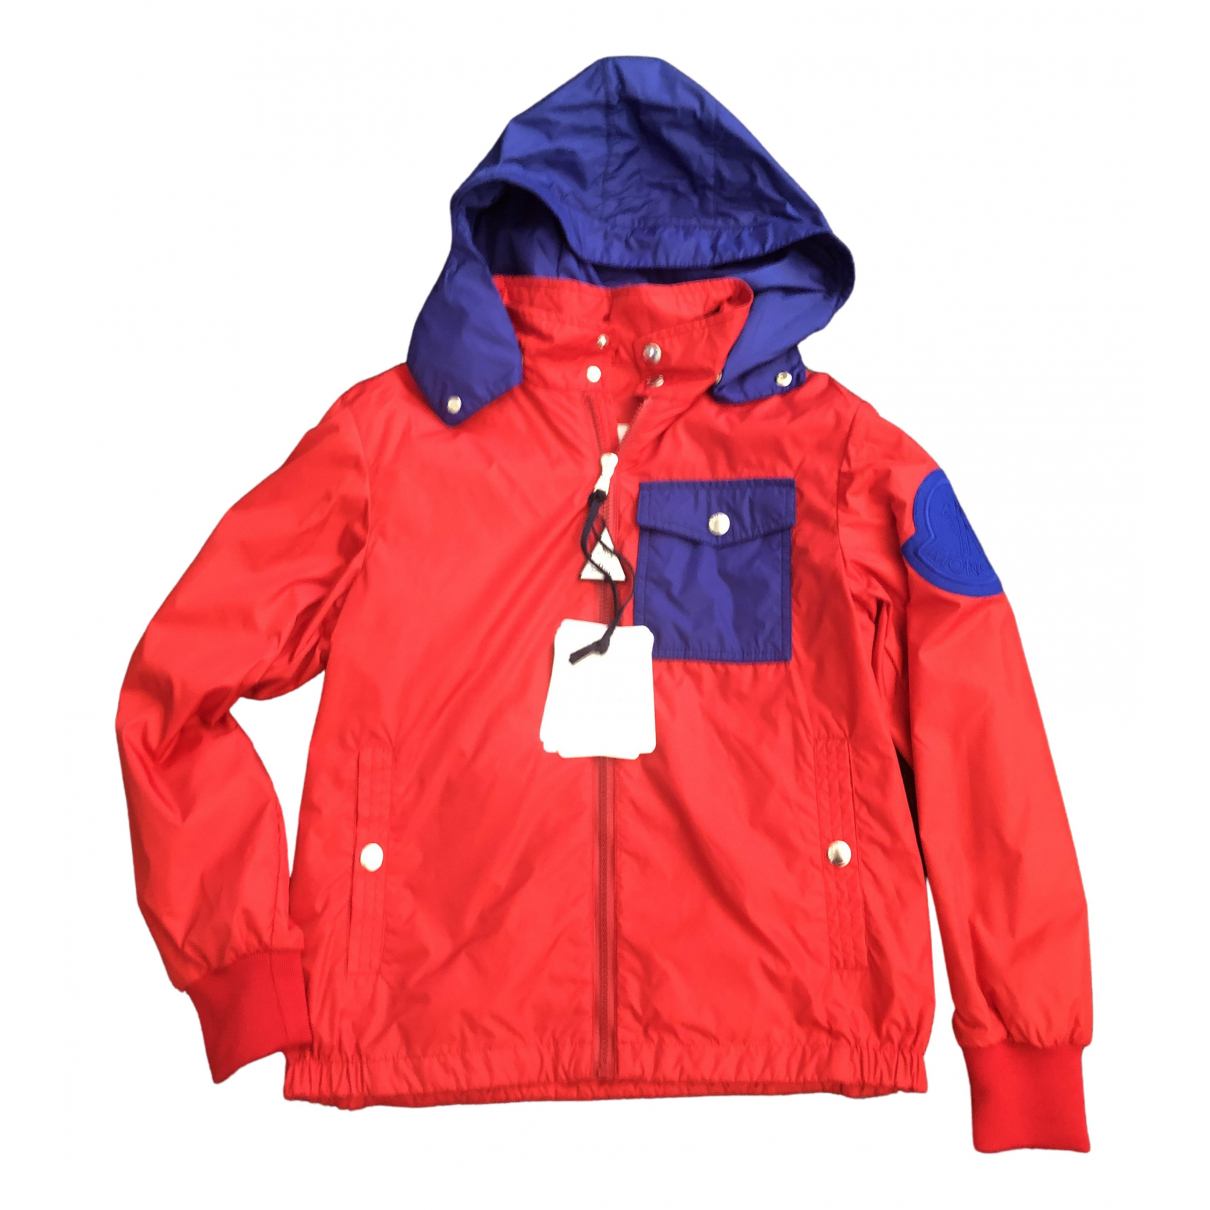 Moncler Classic Red jacket & coat for Kids 12 years - XS UK